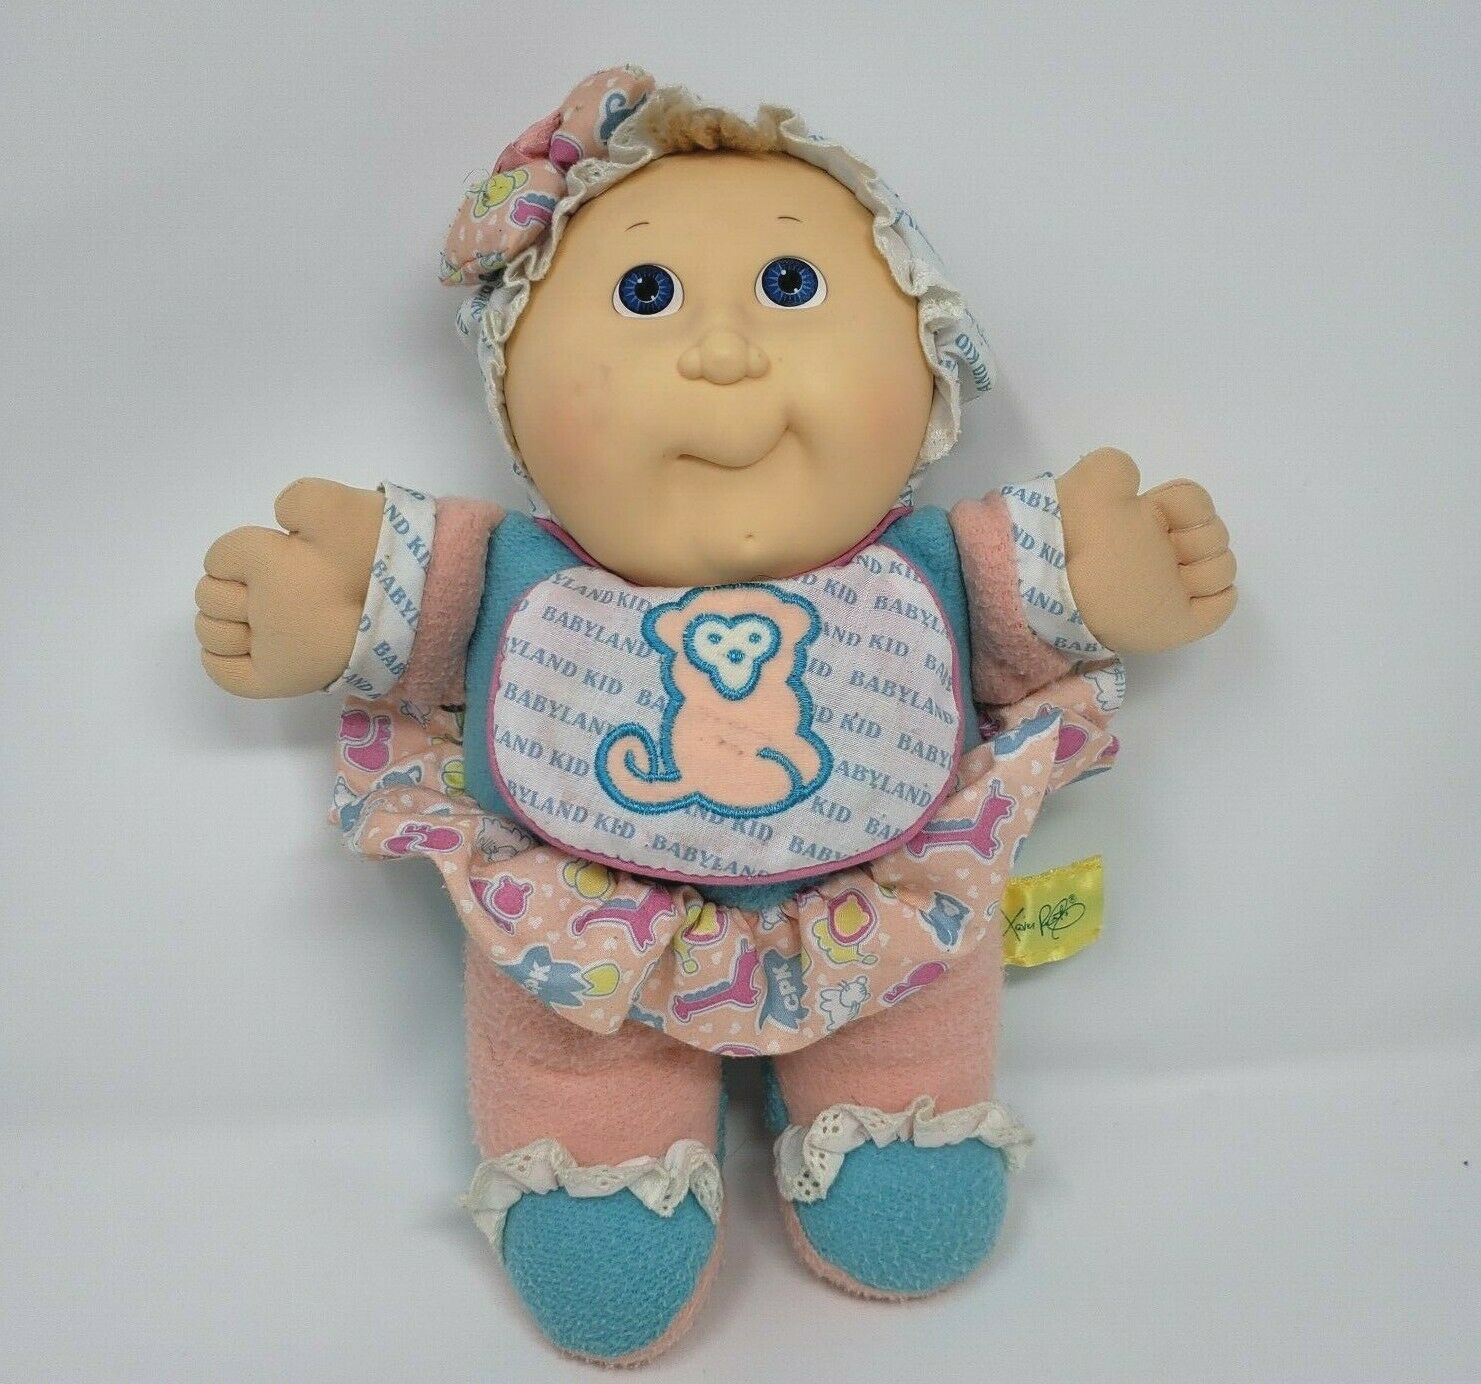 Primary image for VINTAGE 1988 CABBAGE PATCH KIDS BABYLAND STUFFED ANIMAL PLUSH TOY DOLL SQUEAKS